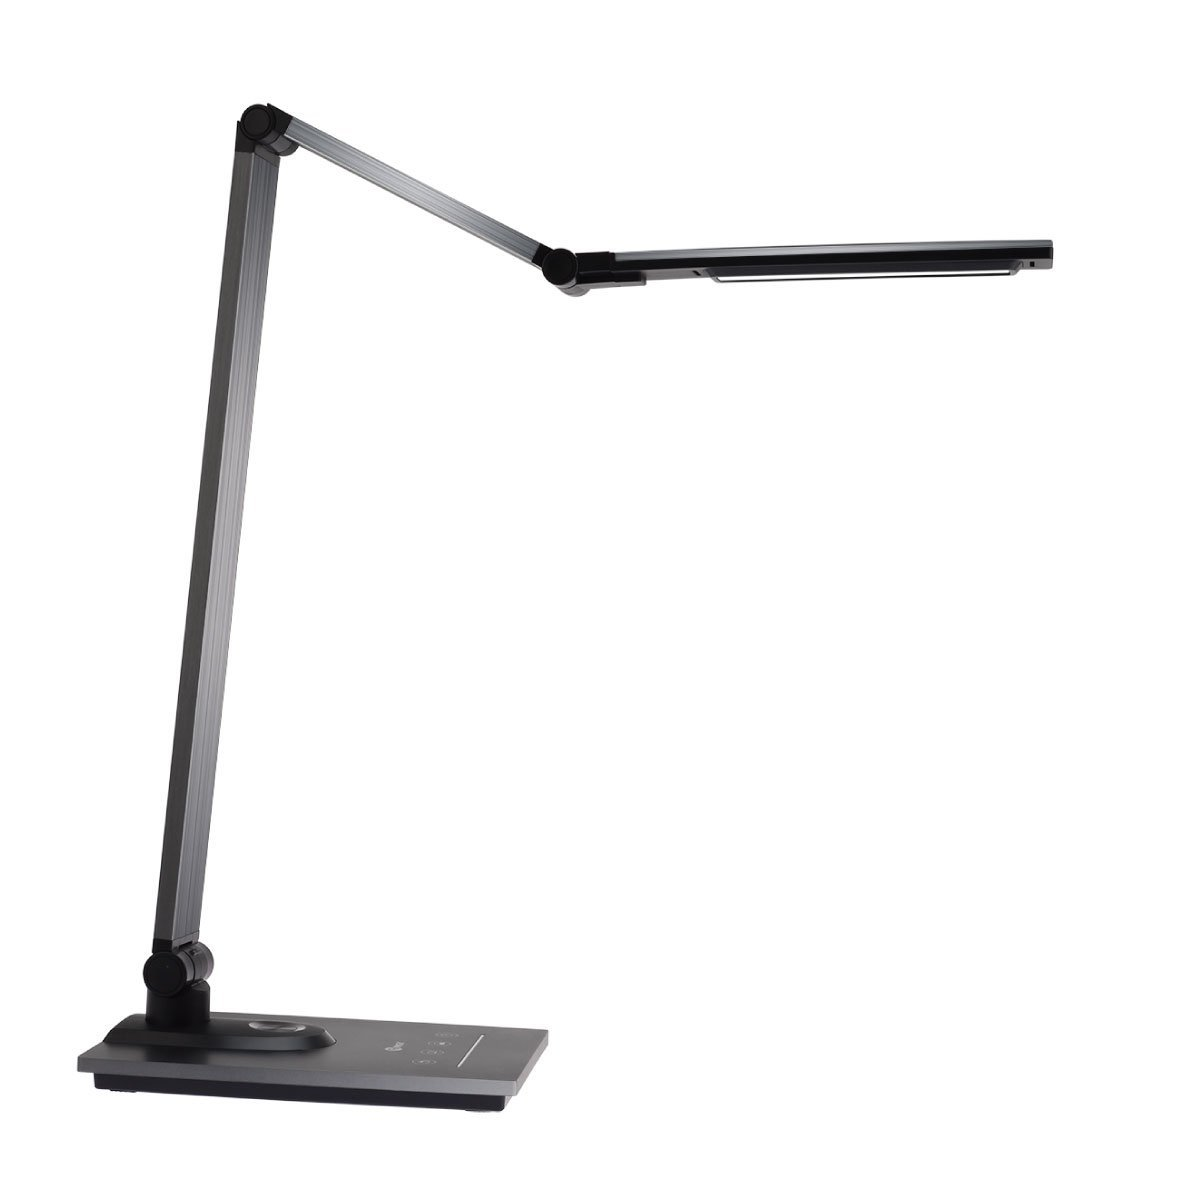 IMIGY Aluminum Alloy LED Desk Lamp with USB Charging Port, 9W Dimmable Office Lamp, Slide Touch Control with Stepless Adjustable Brightness and 3 Color Modes, Black by IMIGY (Image #2)